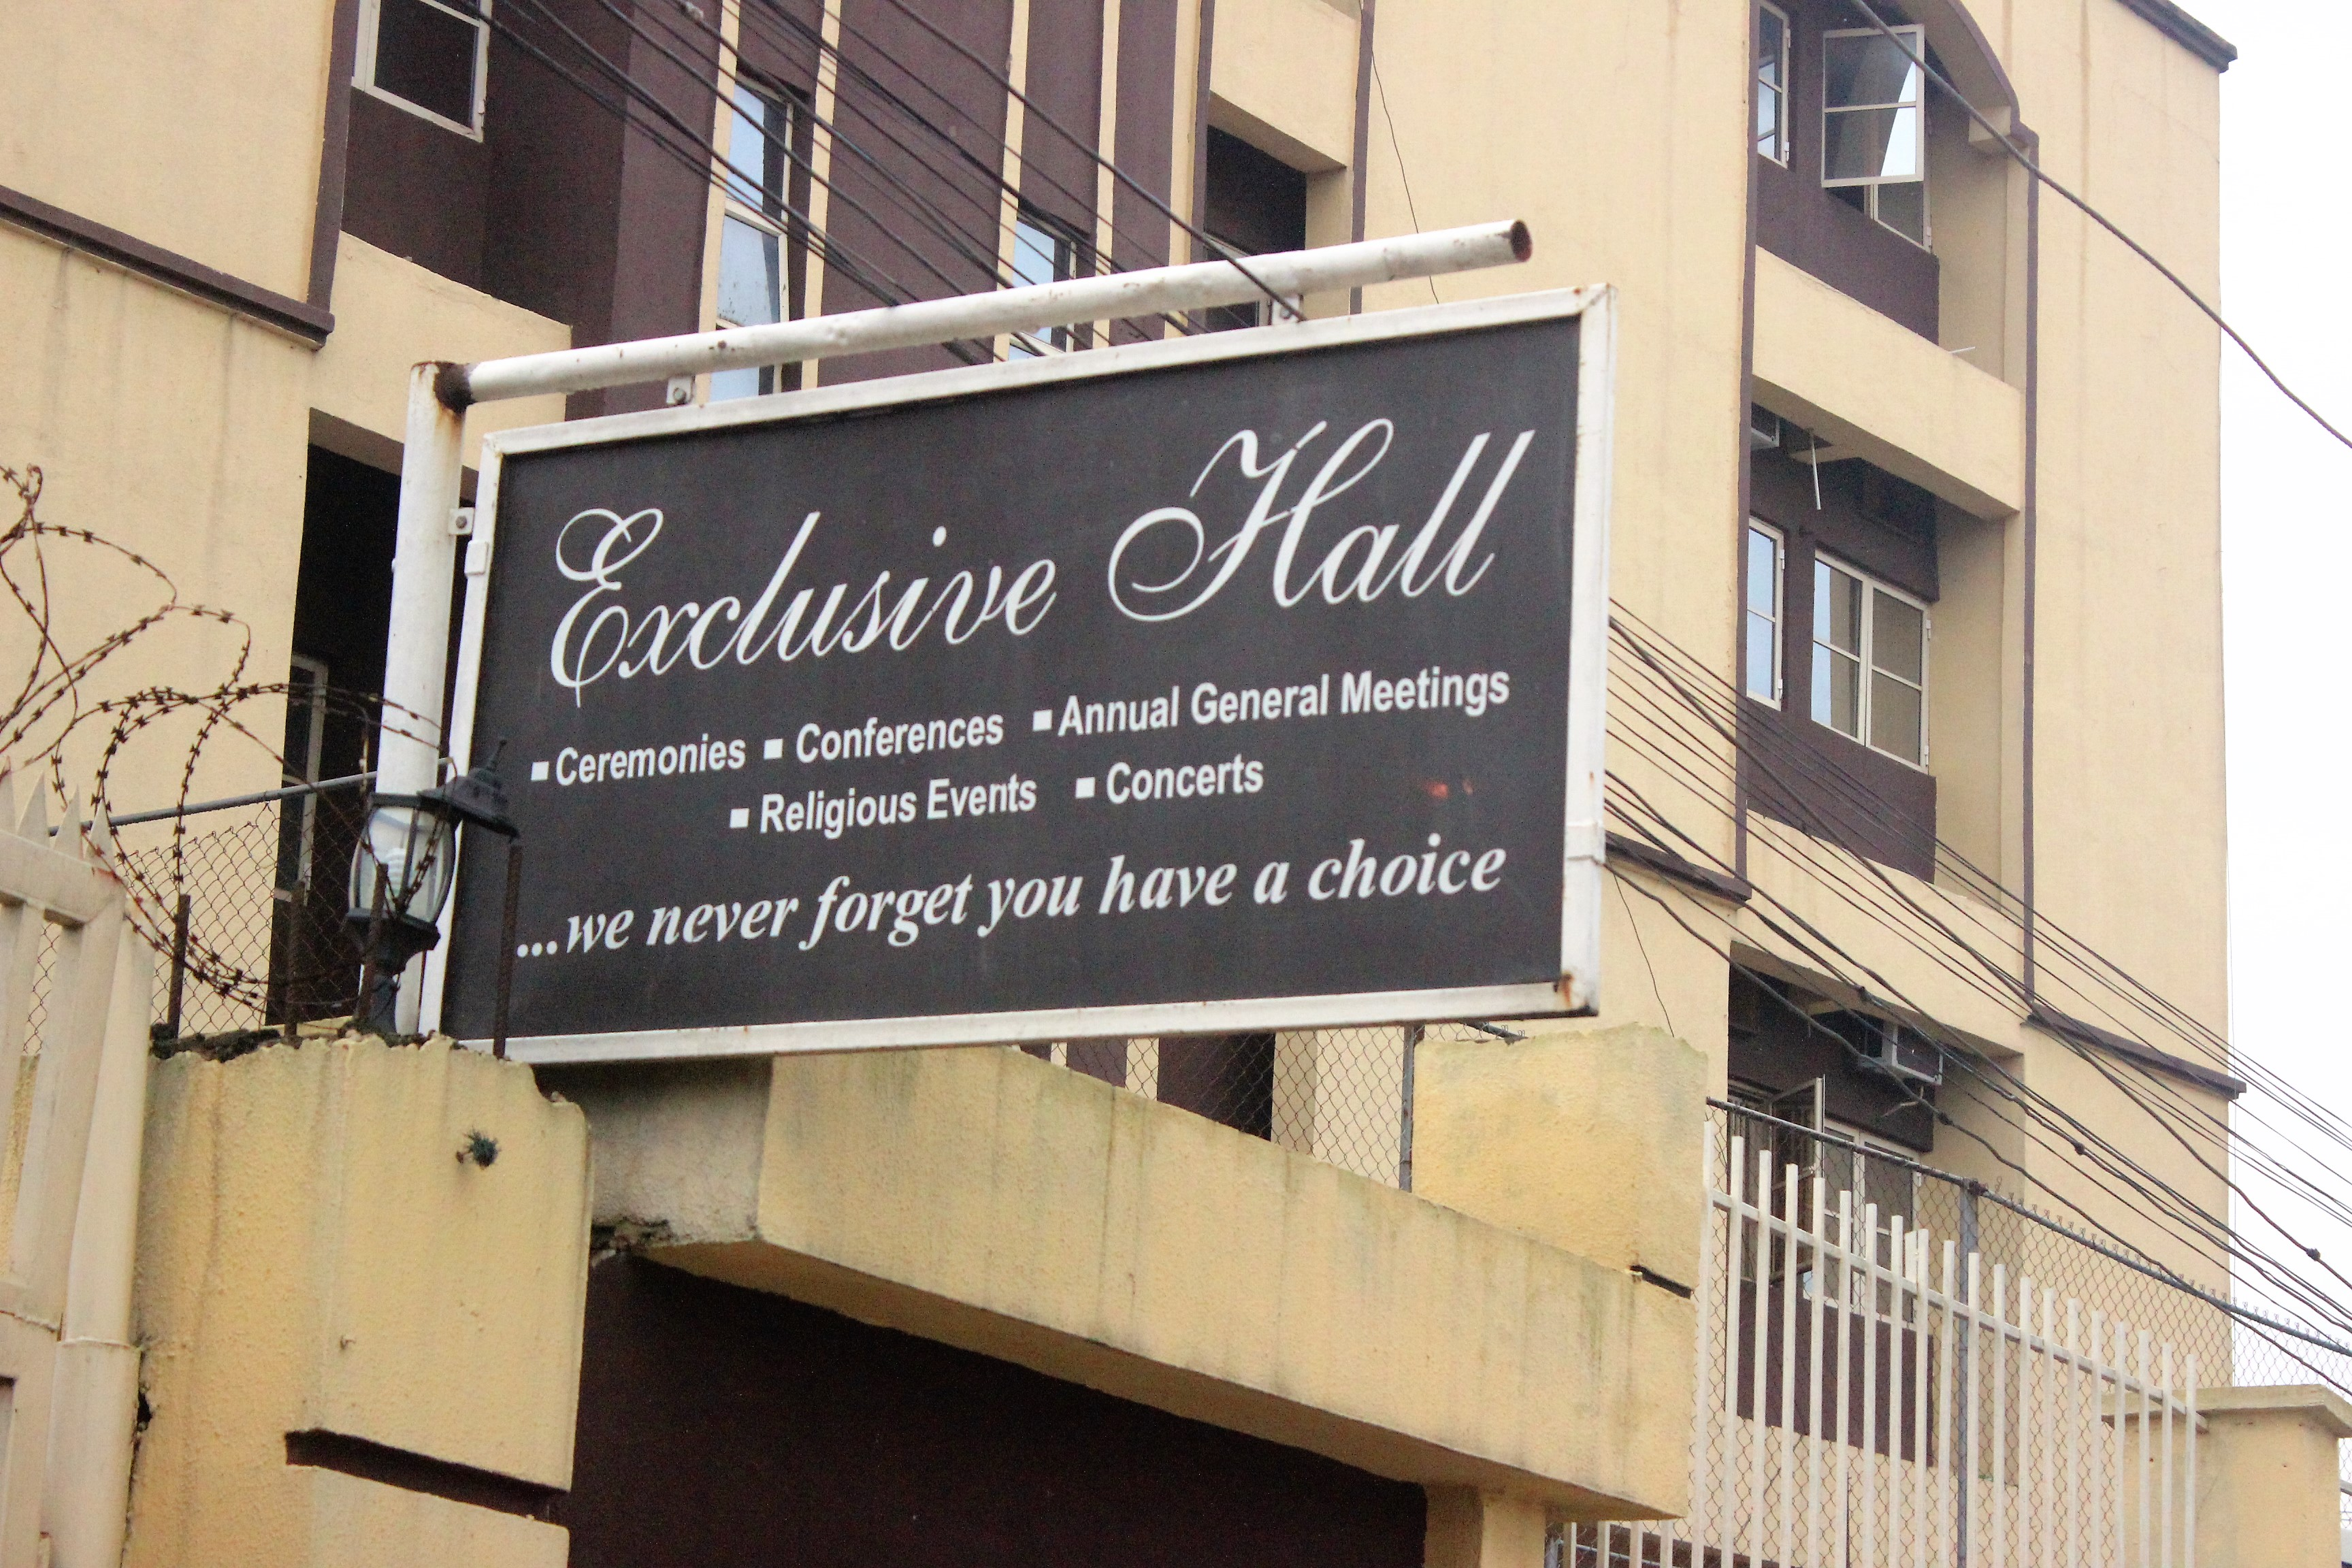 Exclusive Hall